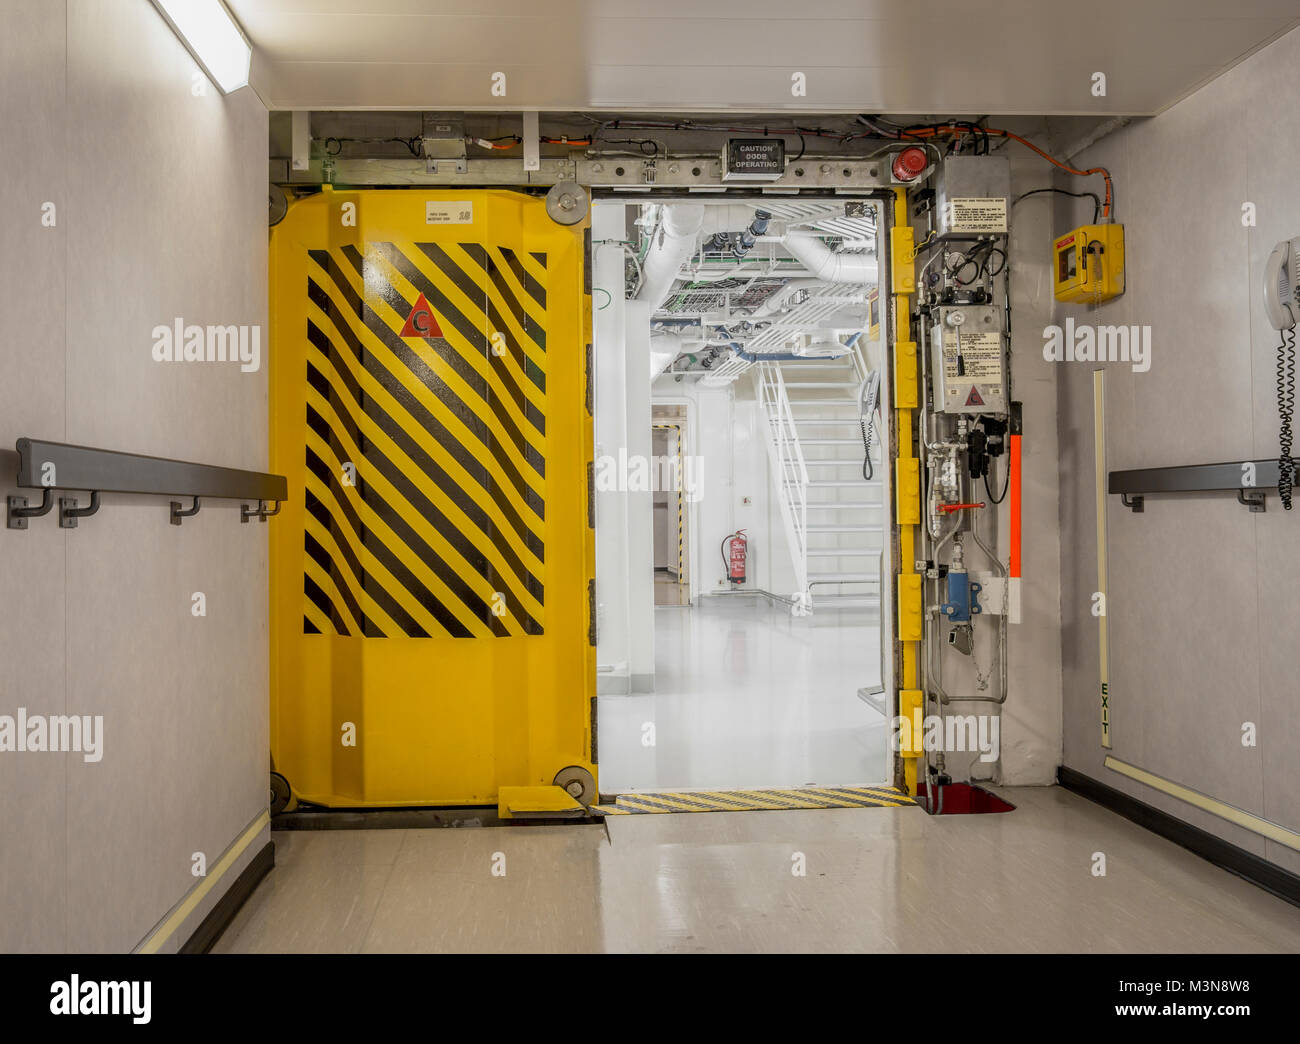 Watertight doors on a ship & Watertight doors on a ship Stock Photo: 174415620 - Alamy